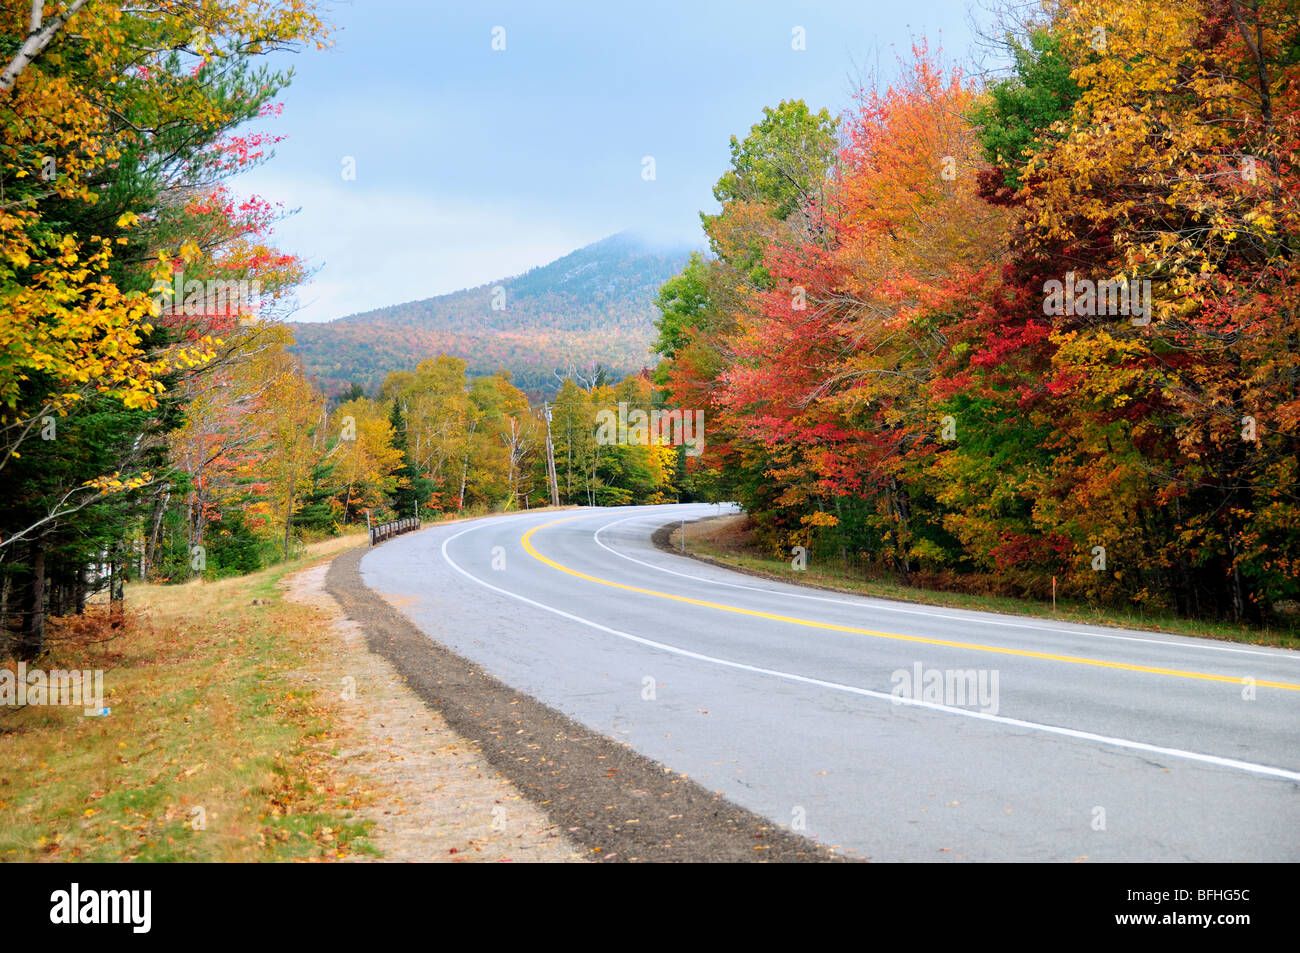 a-road-winds-through-the-misty-saturated